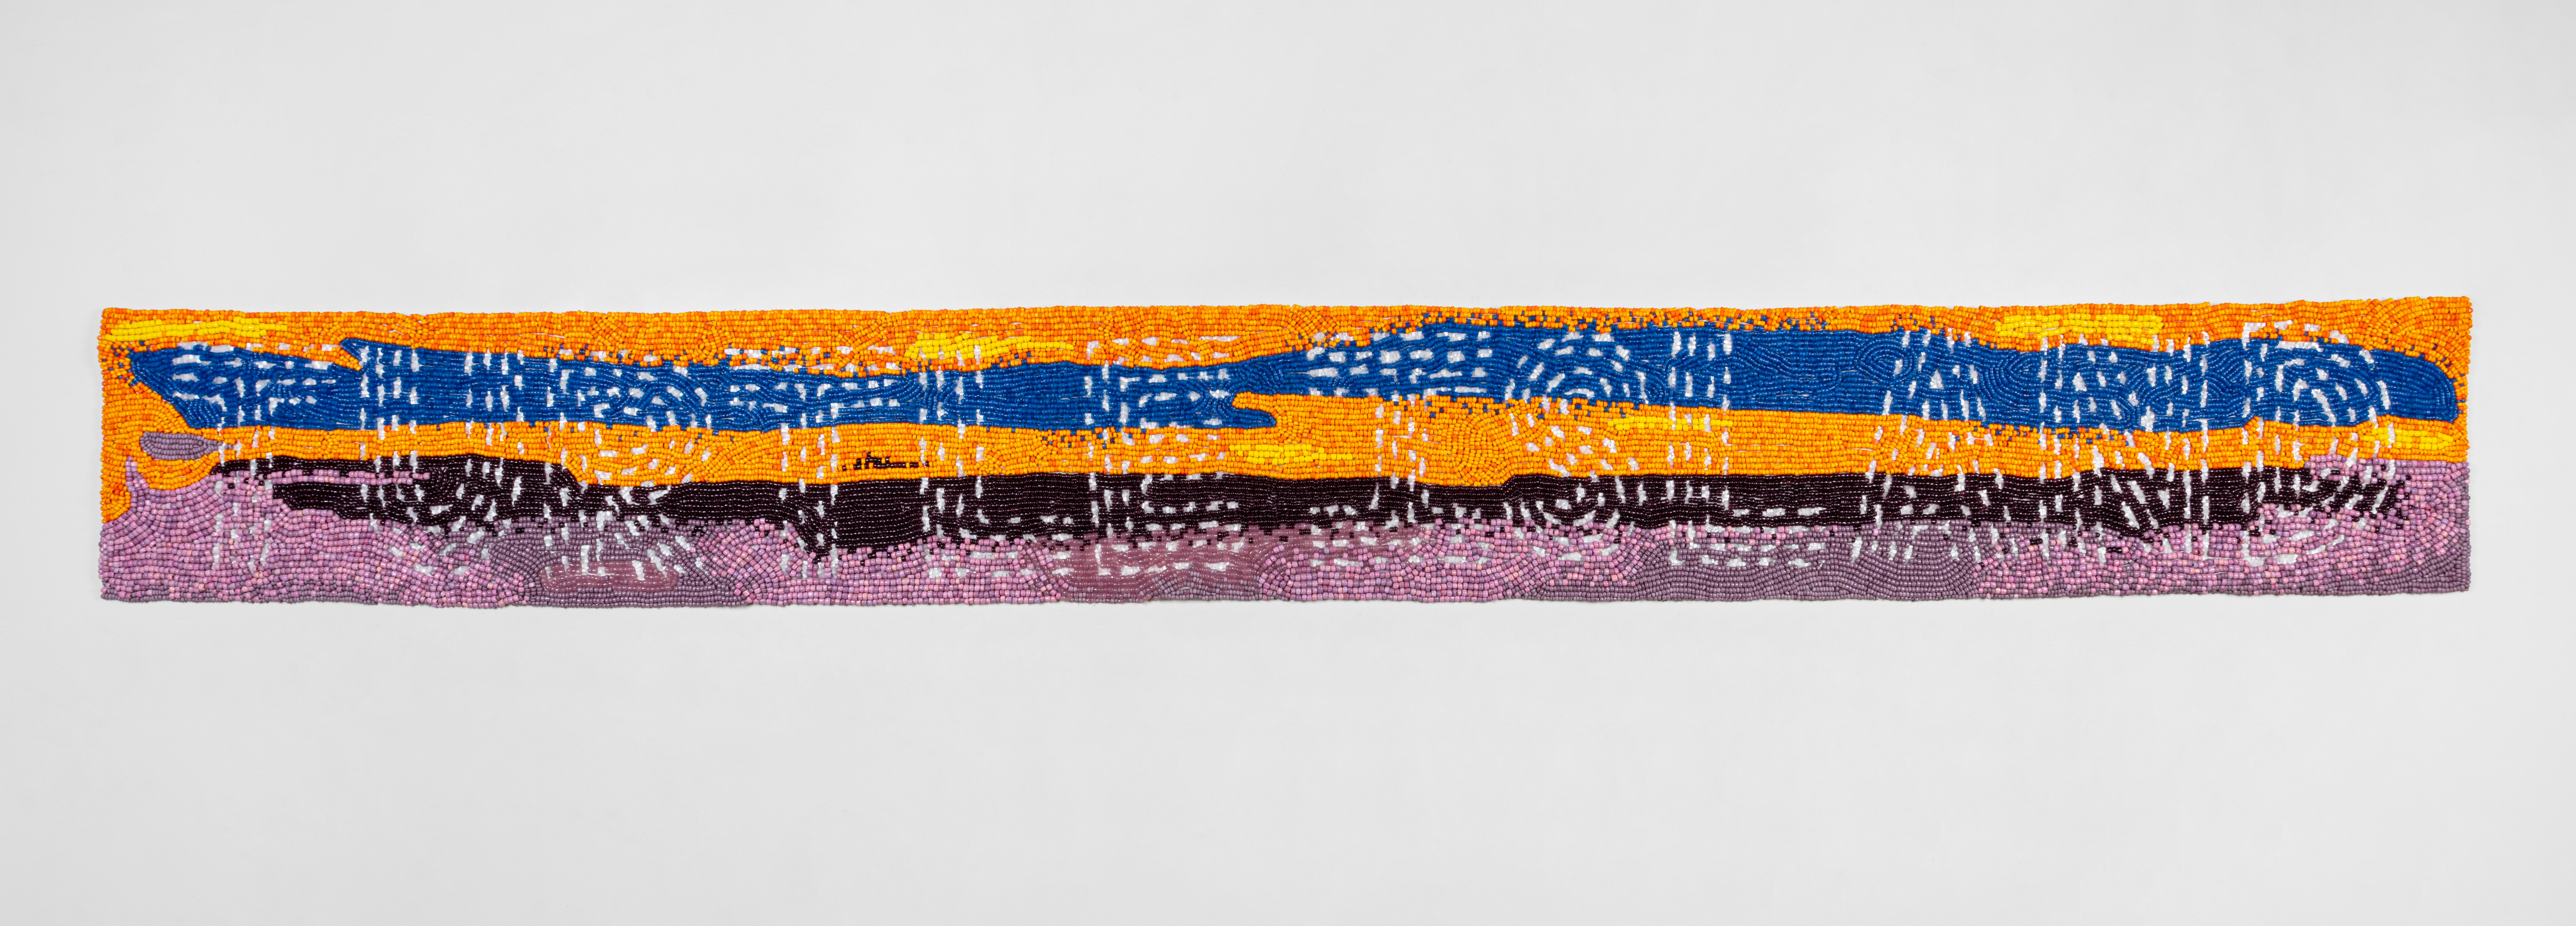 Marie Watt (b. 1967) Vintage Italian glass beads, industrial felt, thread  13.5 x 112 inches  (34.29 x 284.48 cm) Photography by Kevin McConnell - Marc Straus Gallery